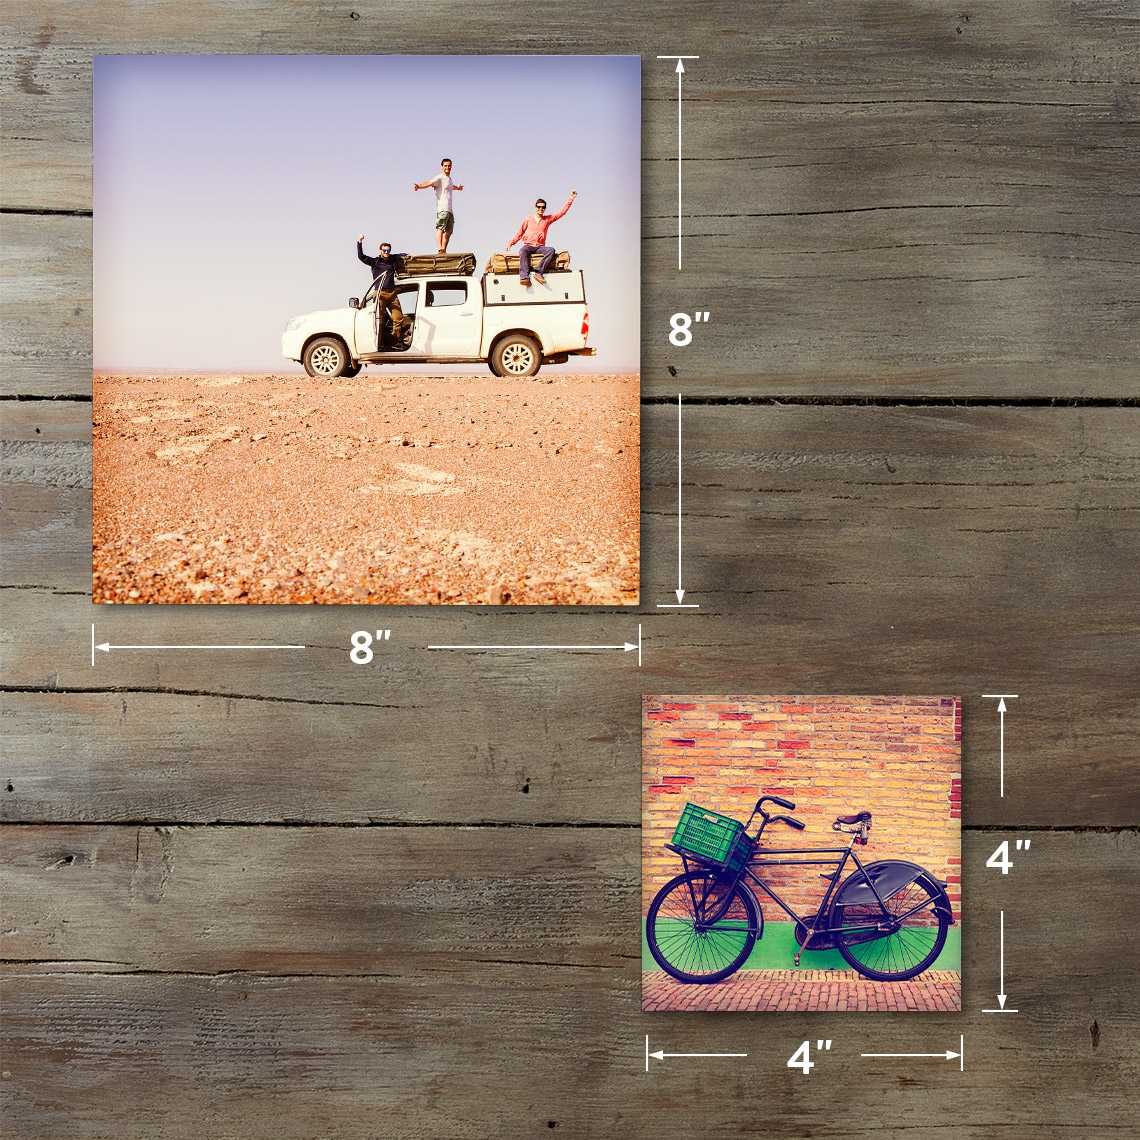 Cached Does walgreens print square photos